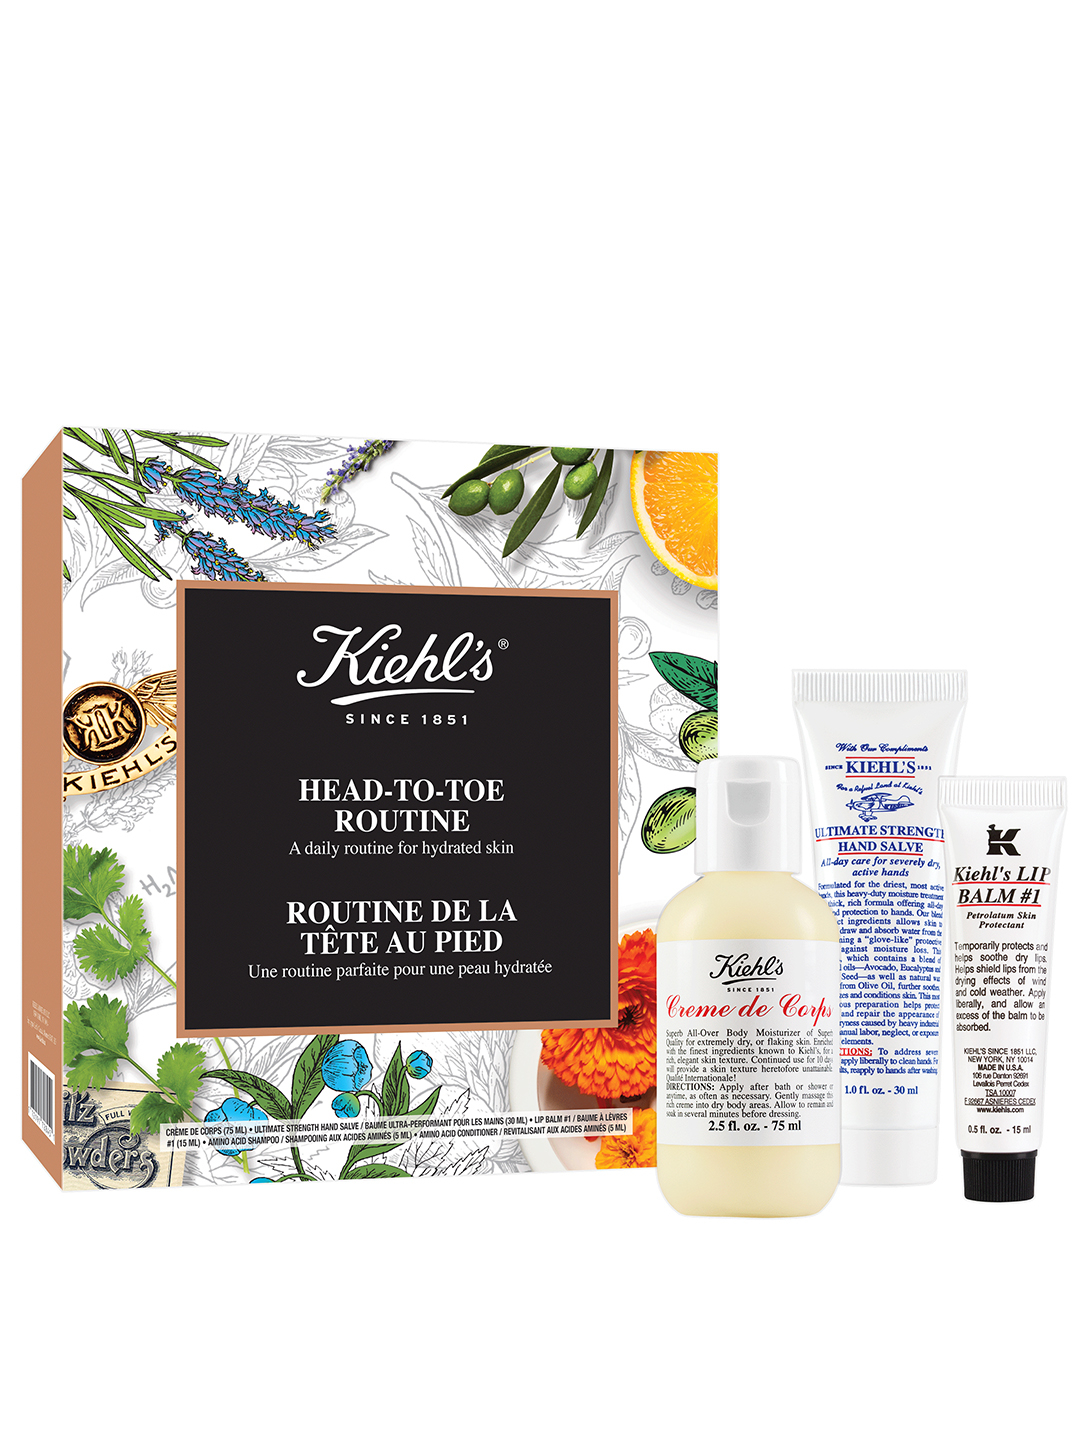 KIEHL'S Head-To-Toe Routine Beauty